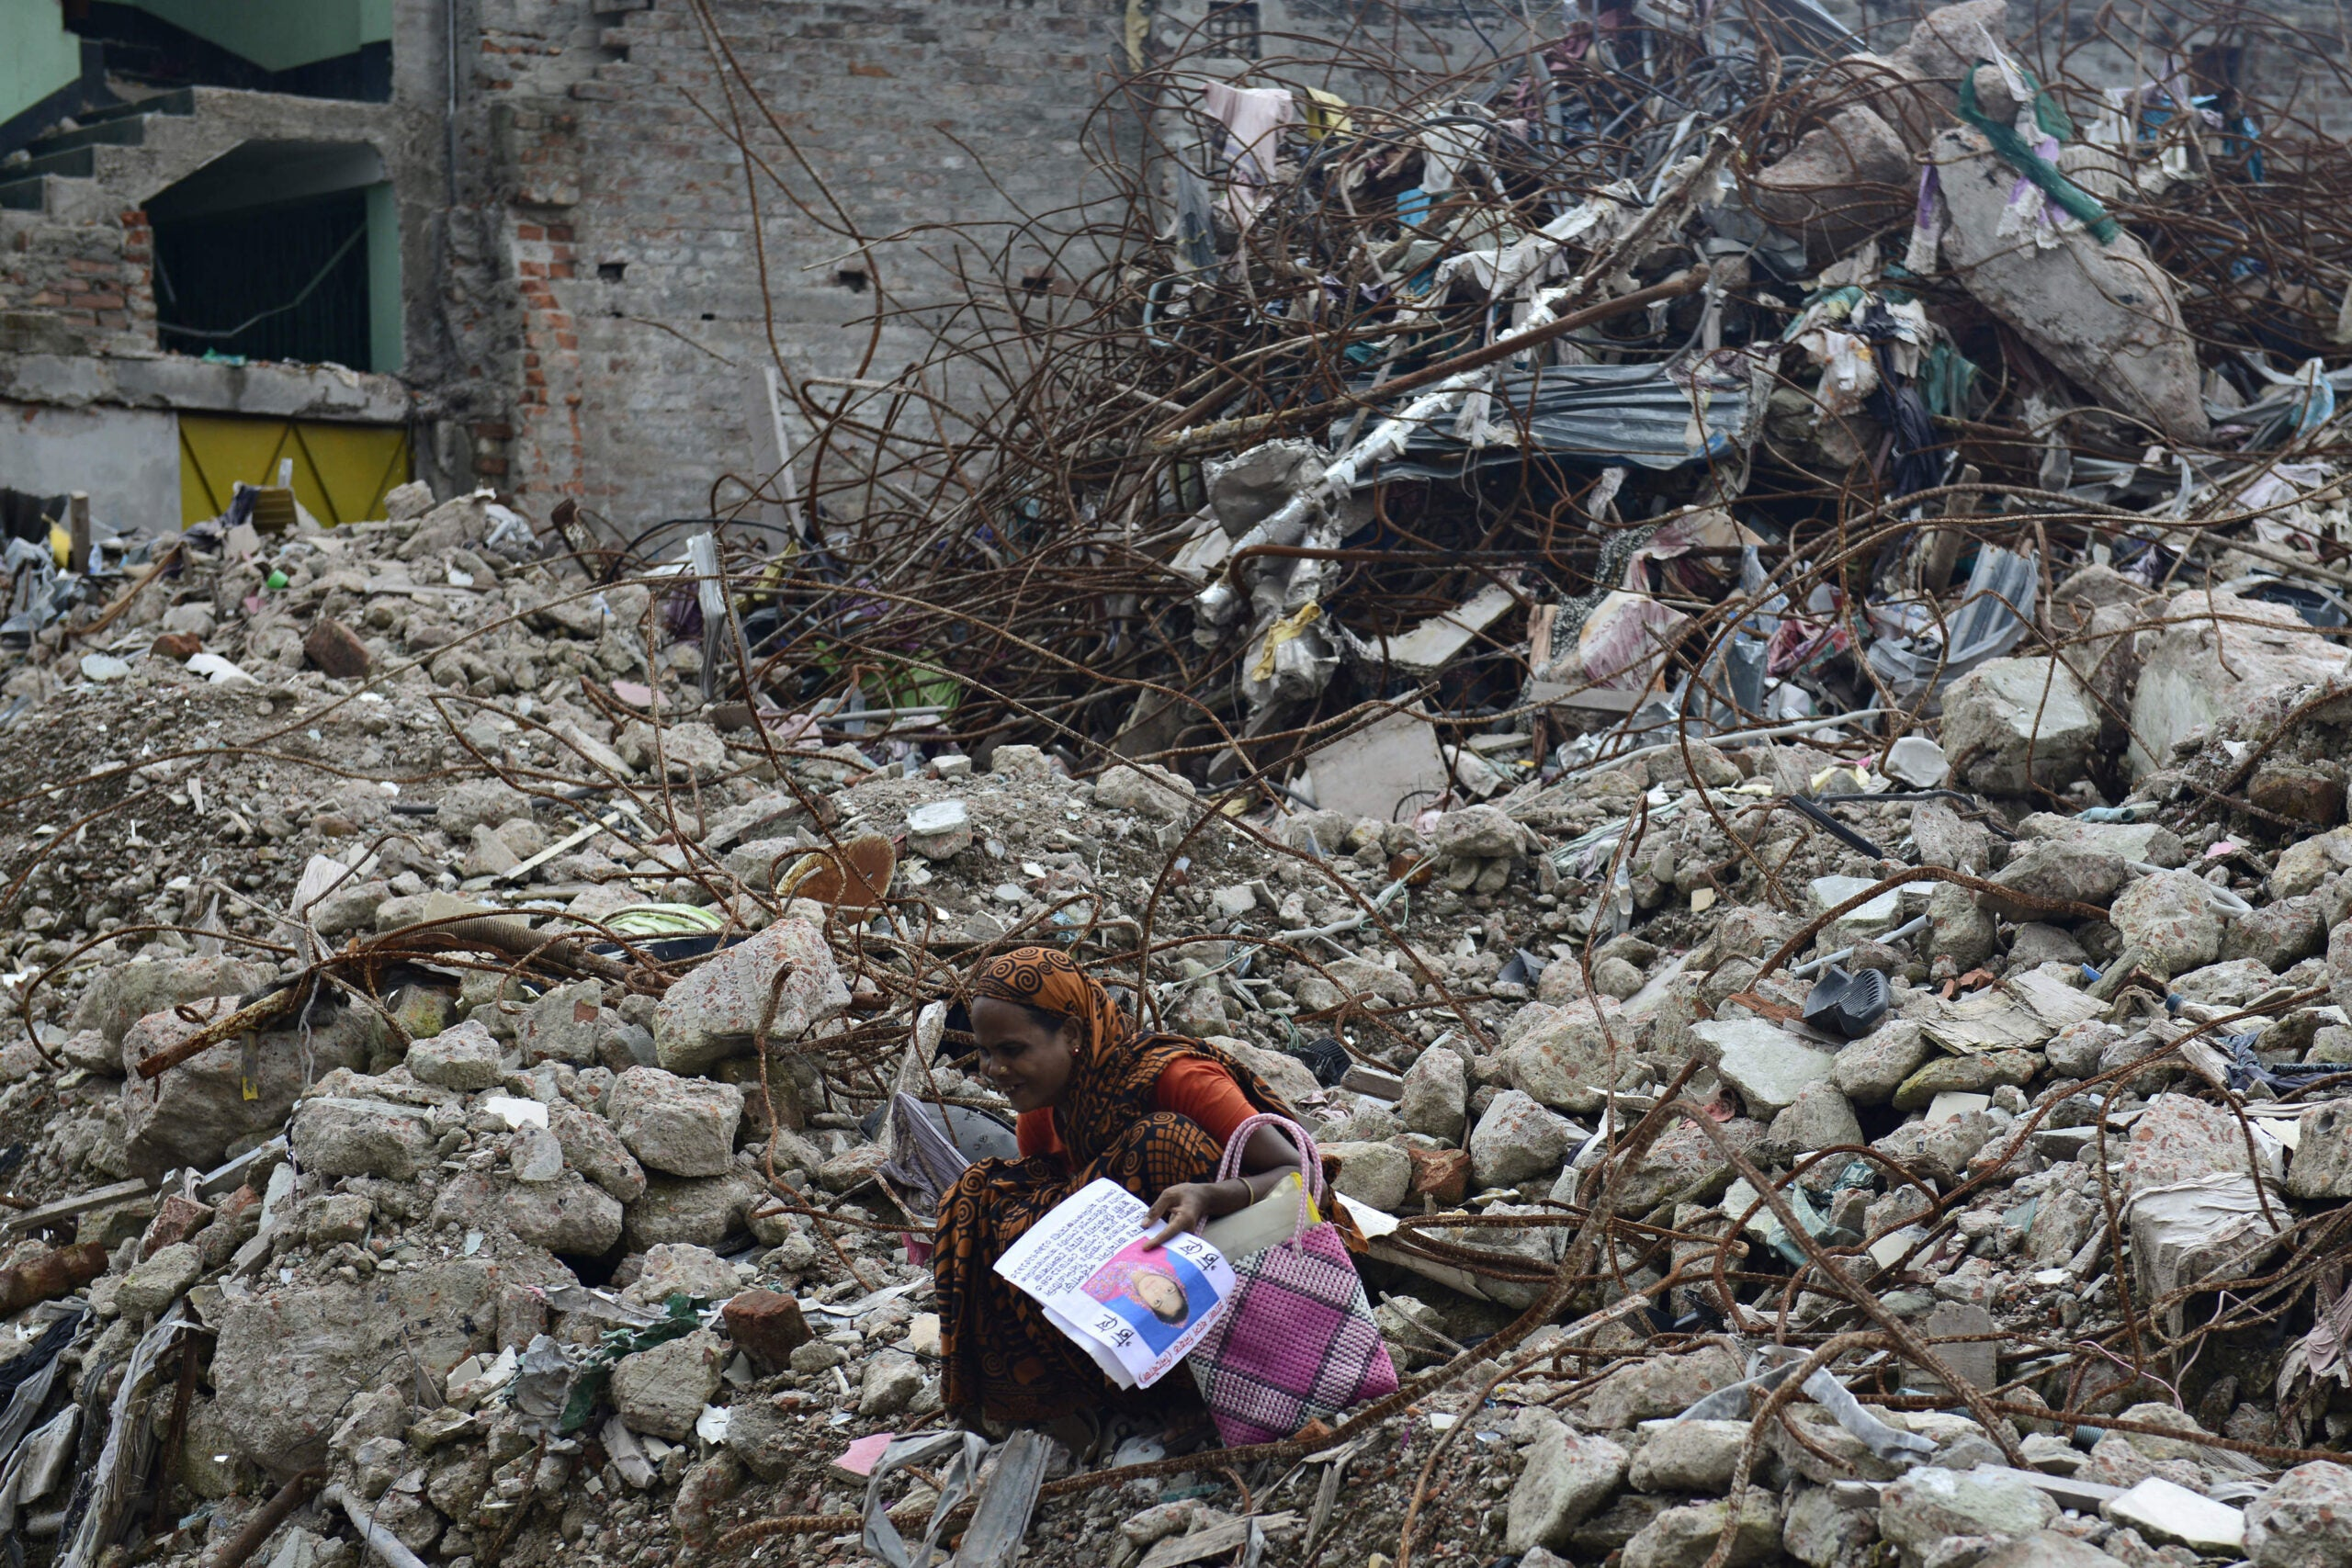 Matalan have bowed to pressure over Rana Plaza, but the campaign goes on